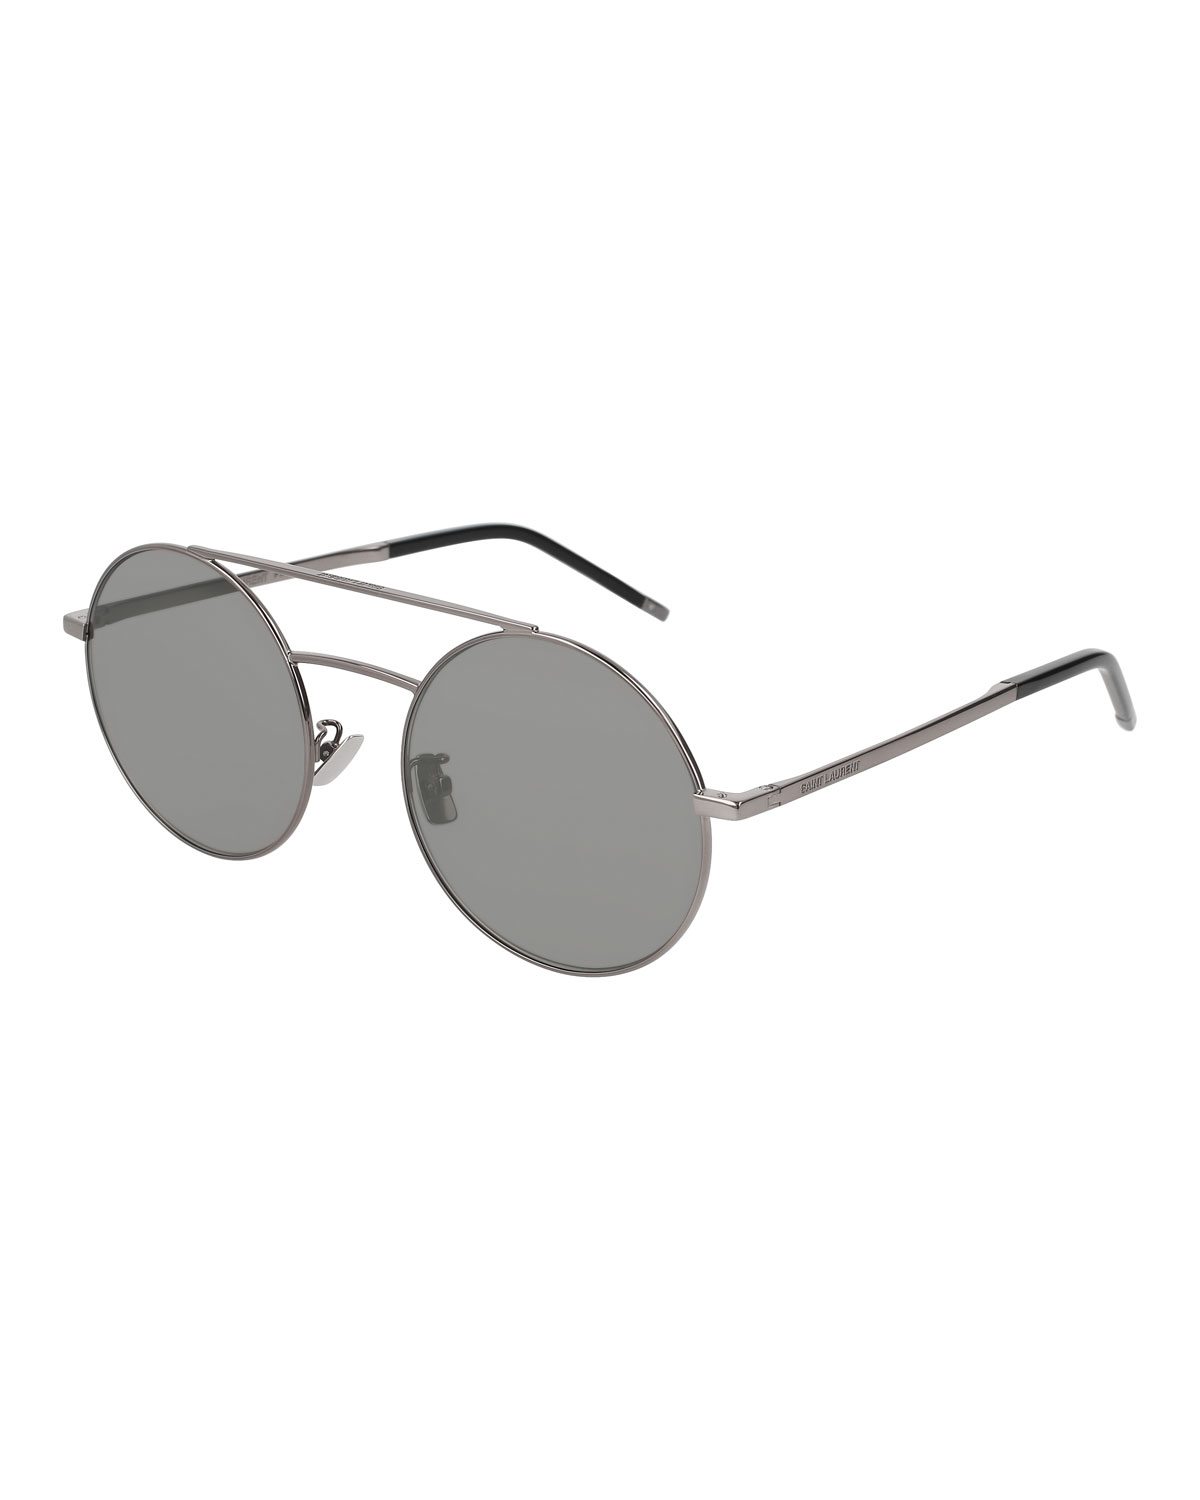 080a32ae42152 Saint Laurent Round Unisex Metal Aviator Sunglasses